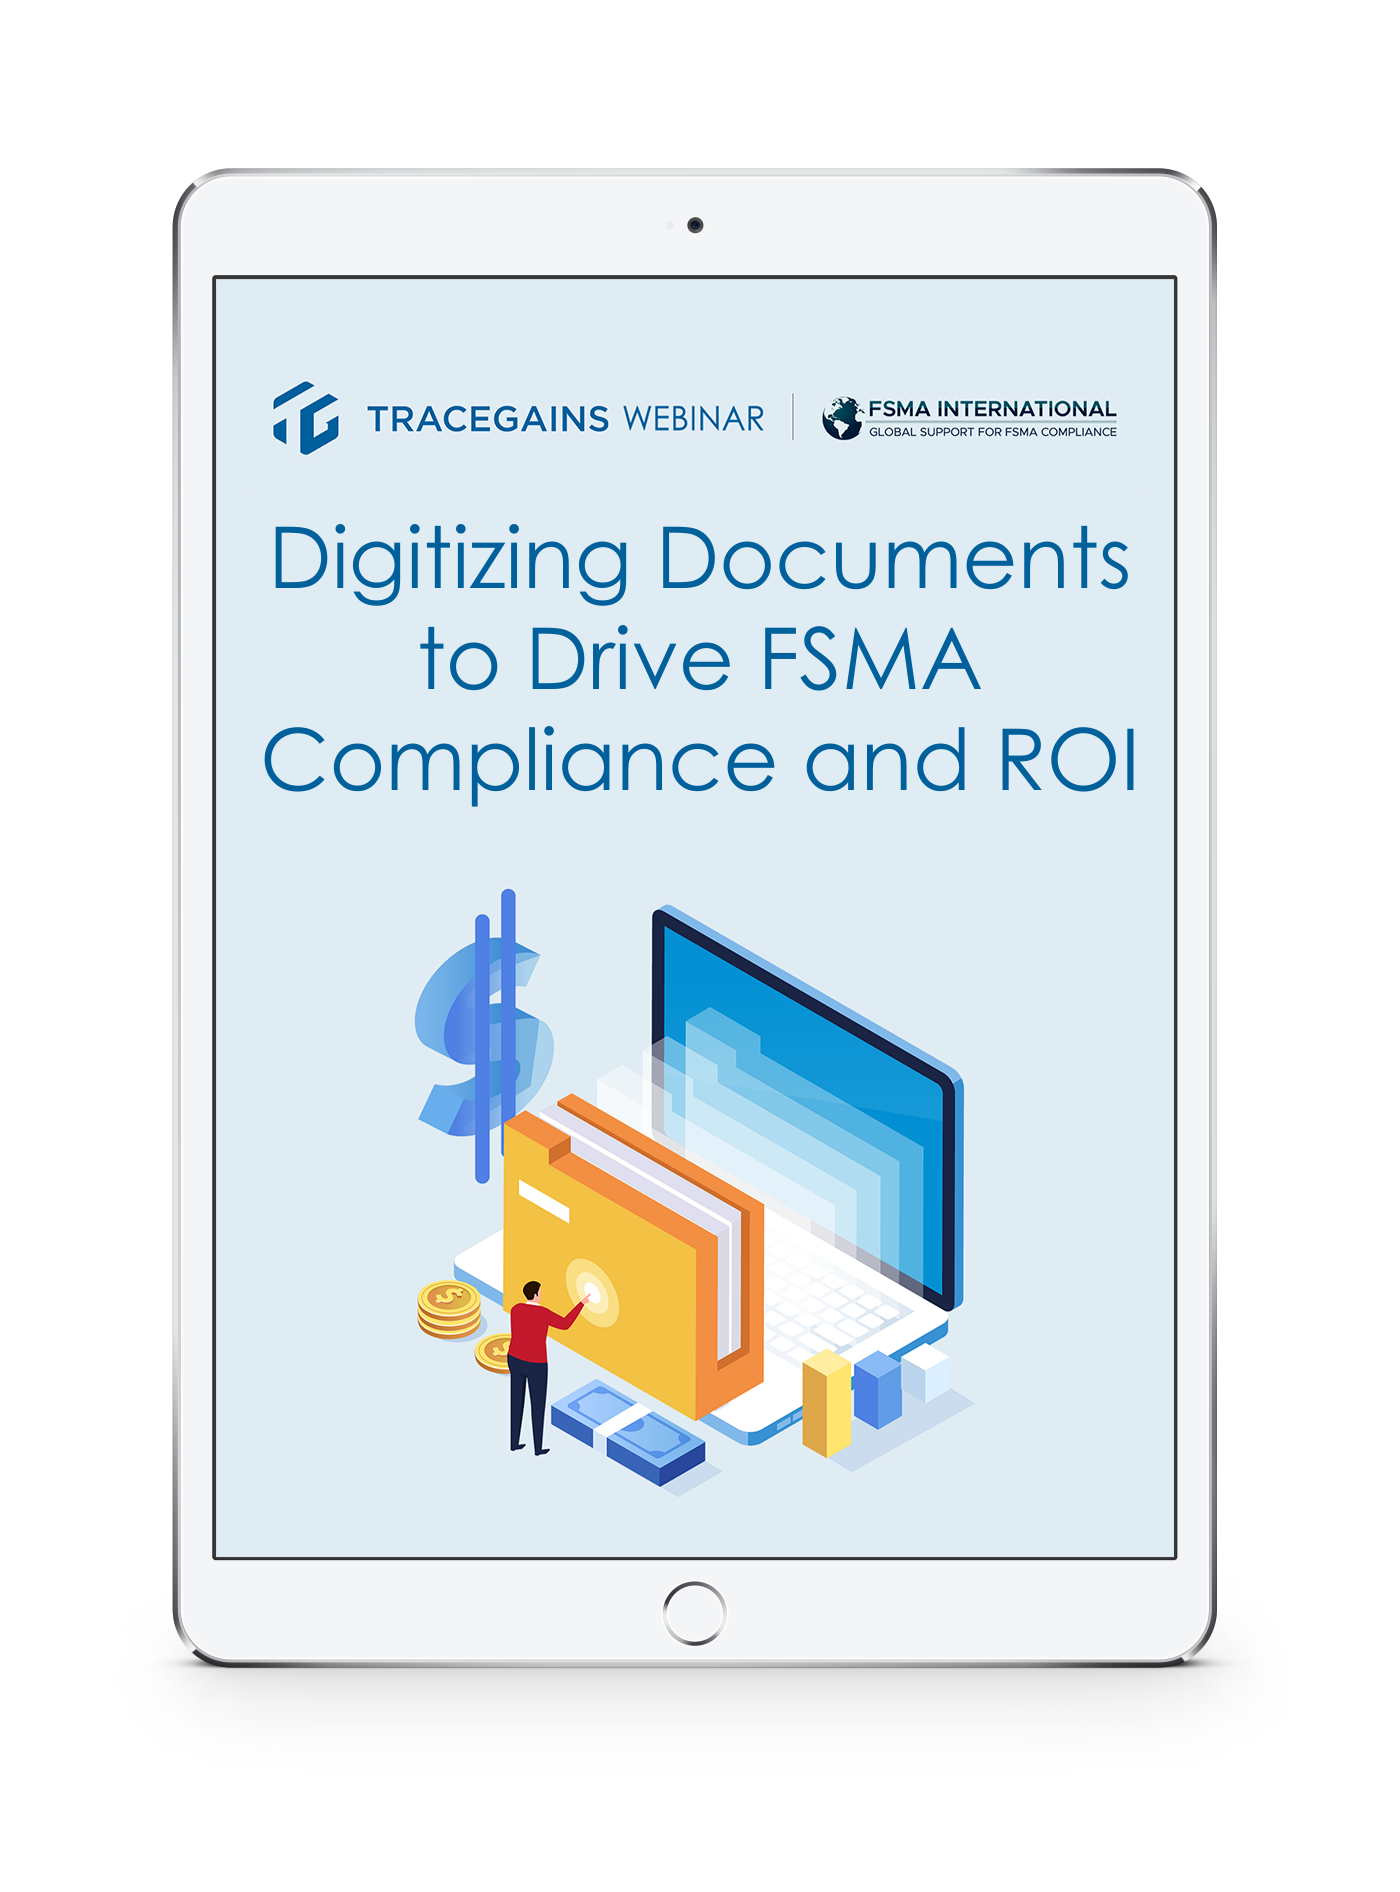 Digitizing Documents to Drive FSMA Compliance and ROI